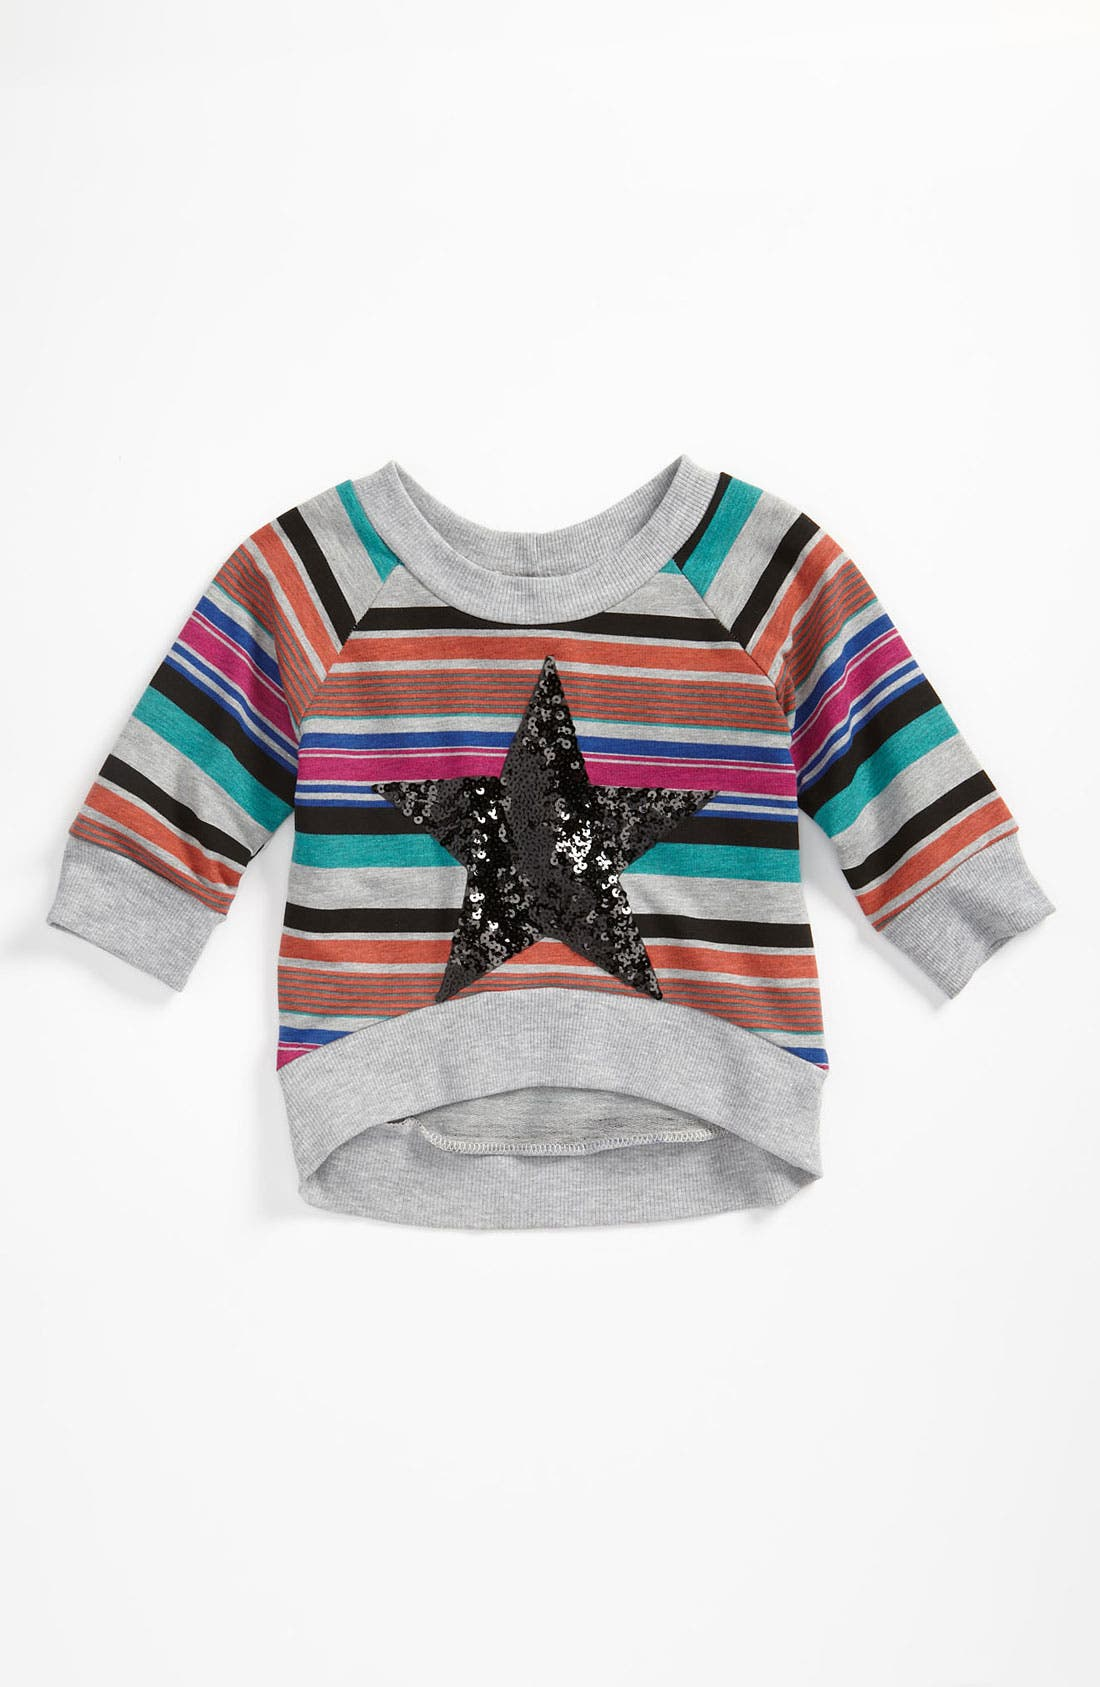 Main Image - Miken Clothing Sequin Pullover Top (Toddler)